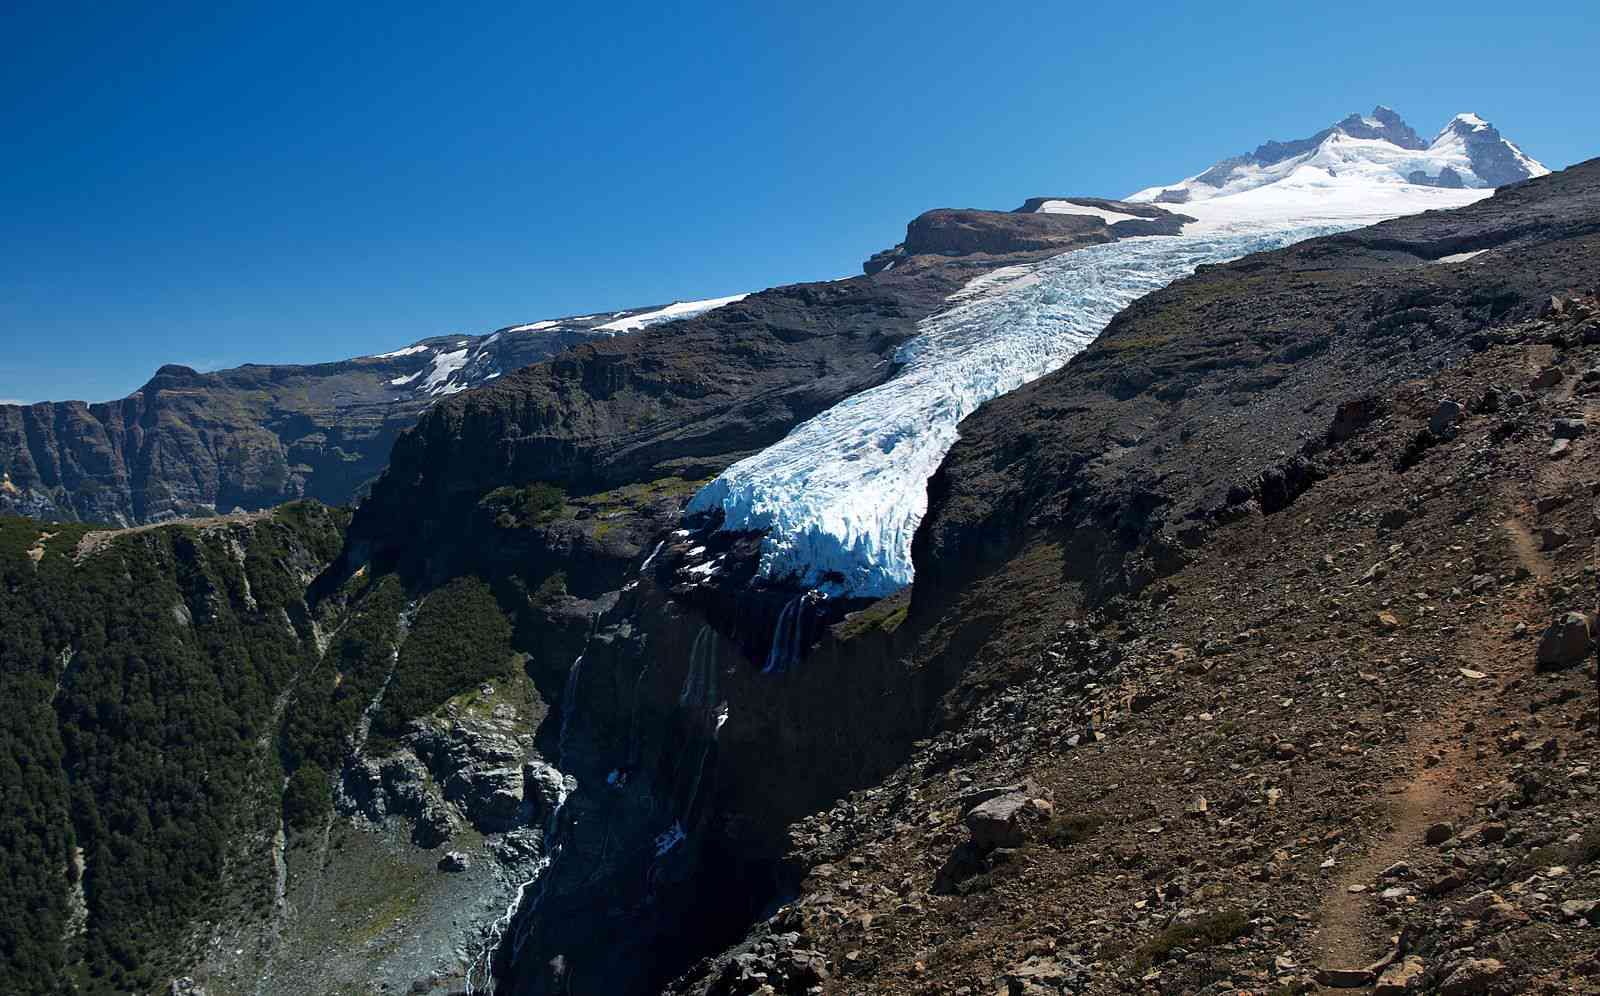 Hanging glaciers flow down mountainsides until they meet an abrupt end at a cliff's edge.